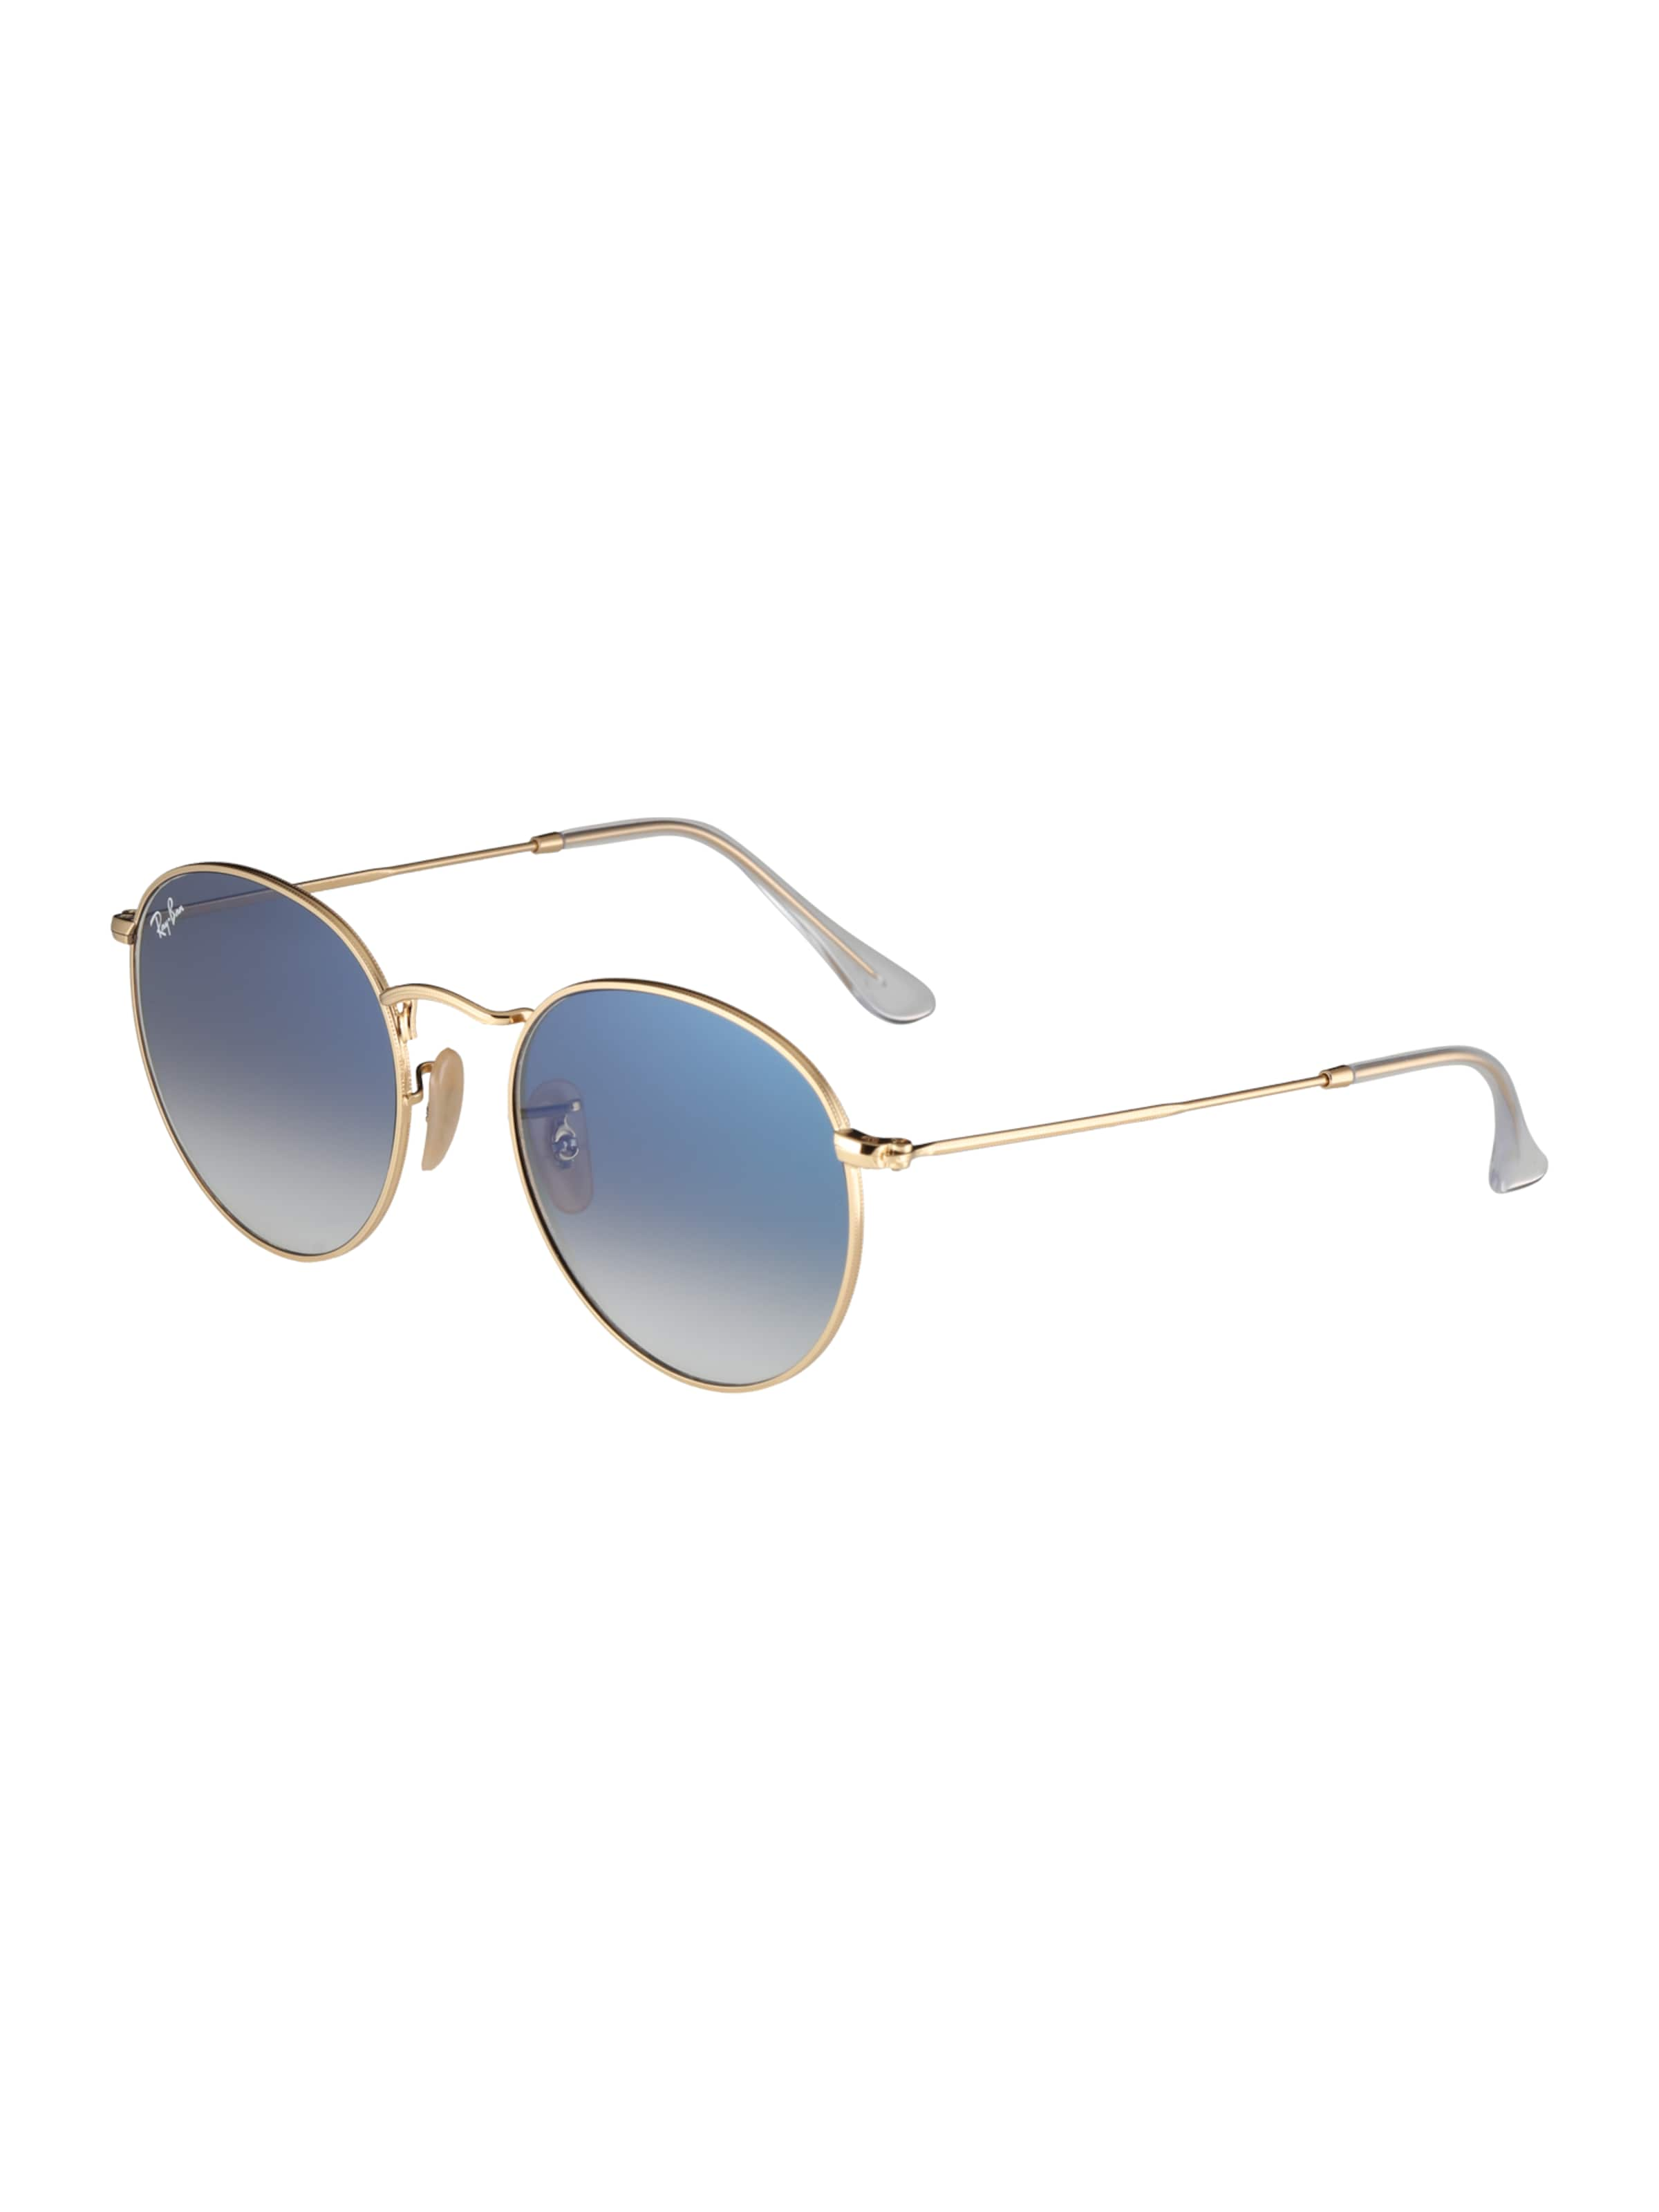 Ray ban Sonnenbrille GoldGrau In 'round' dhtxrsQC